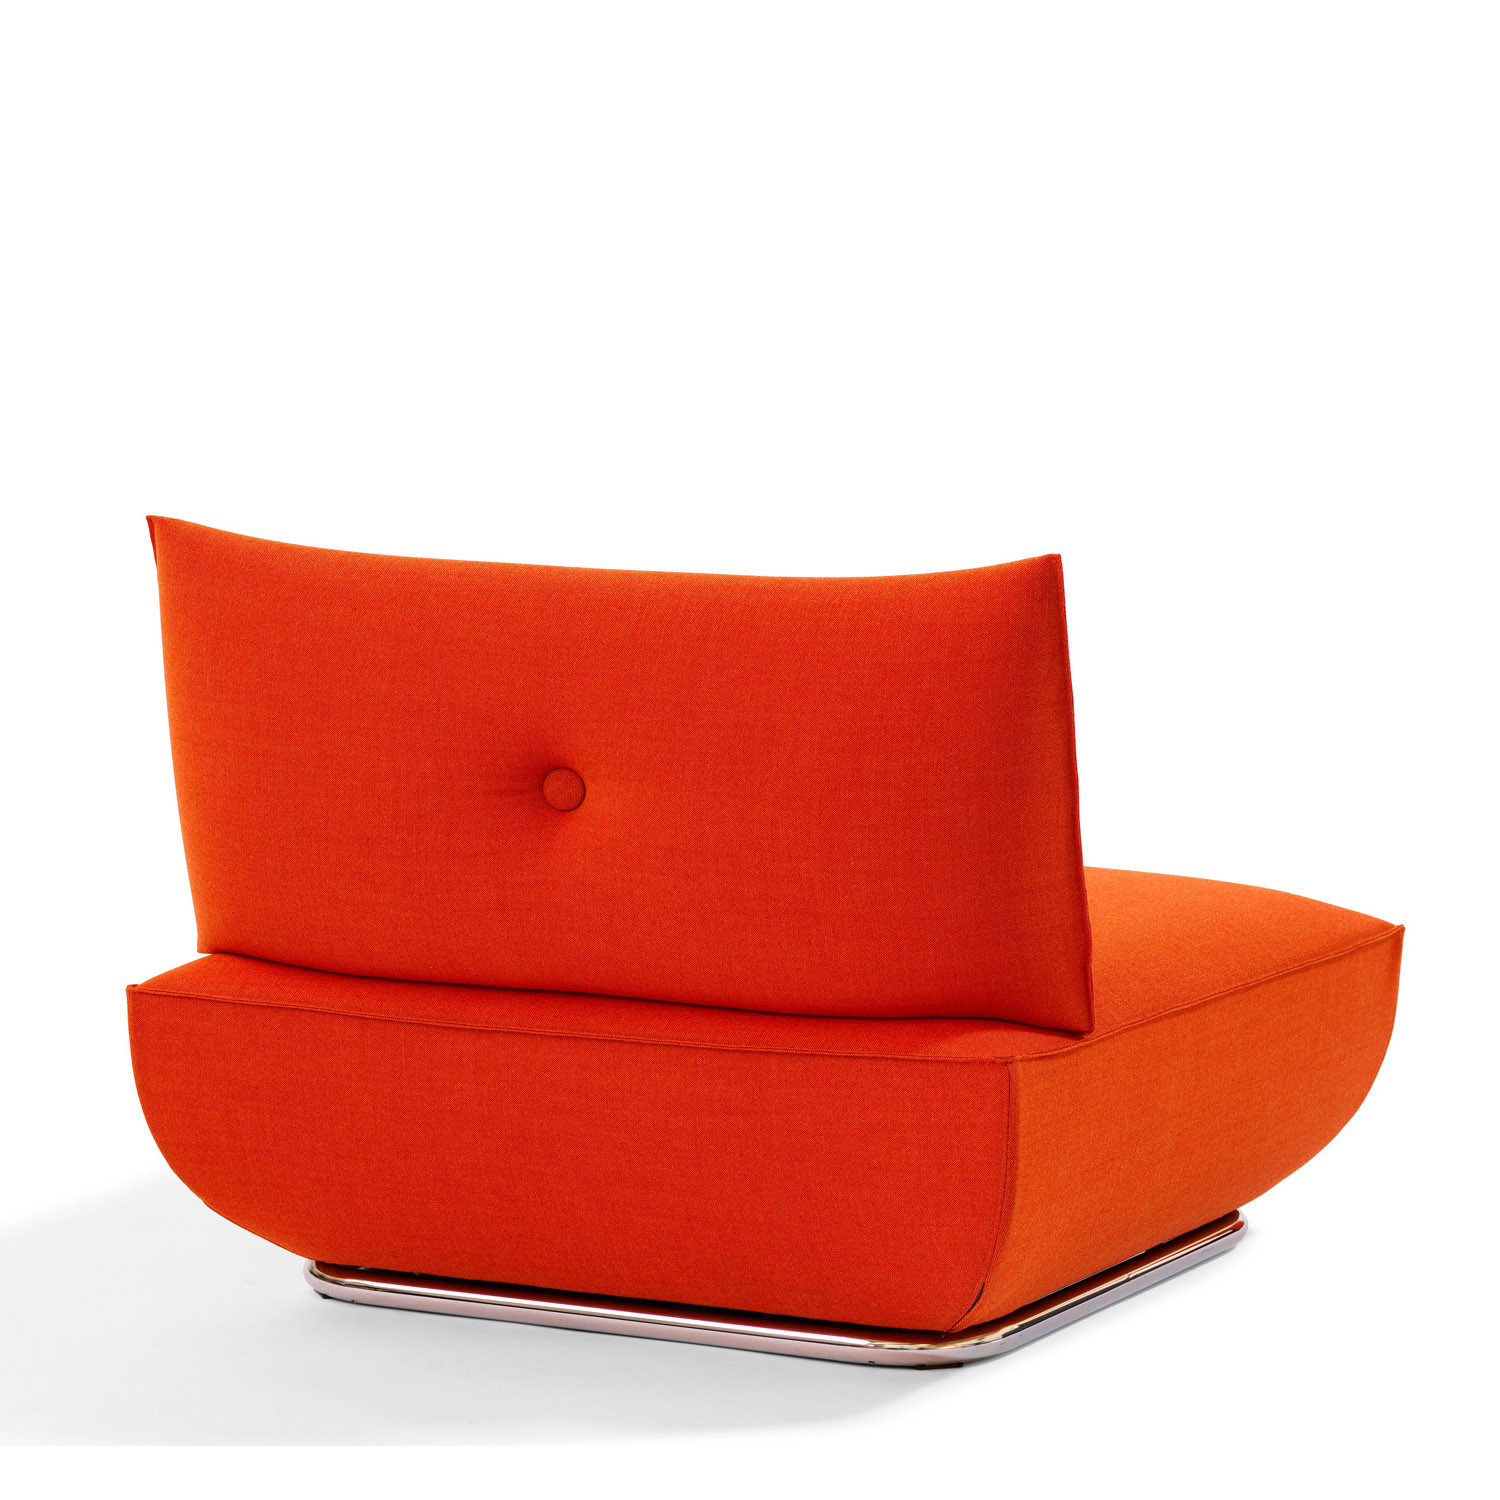 Dunder Easy Chairs S601-S605 by Bla Station